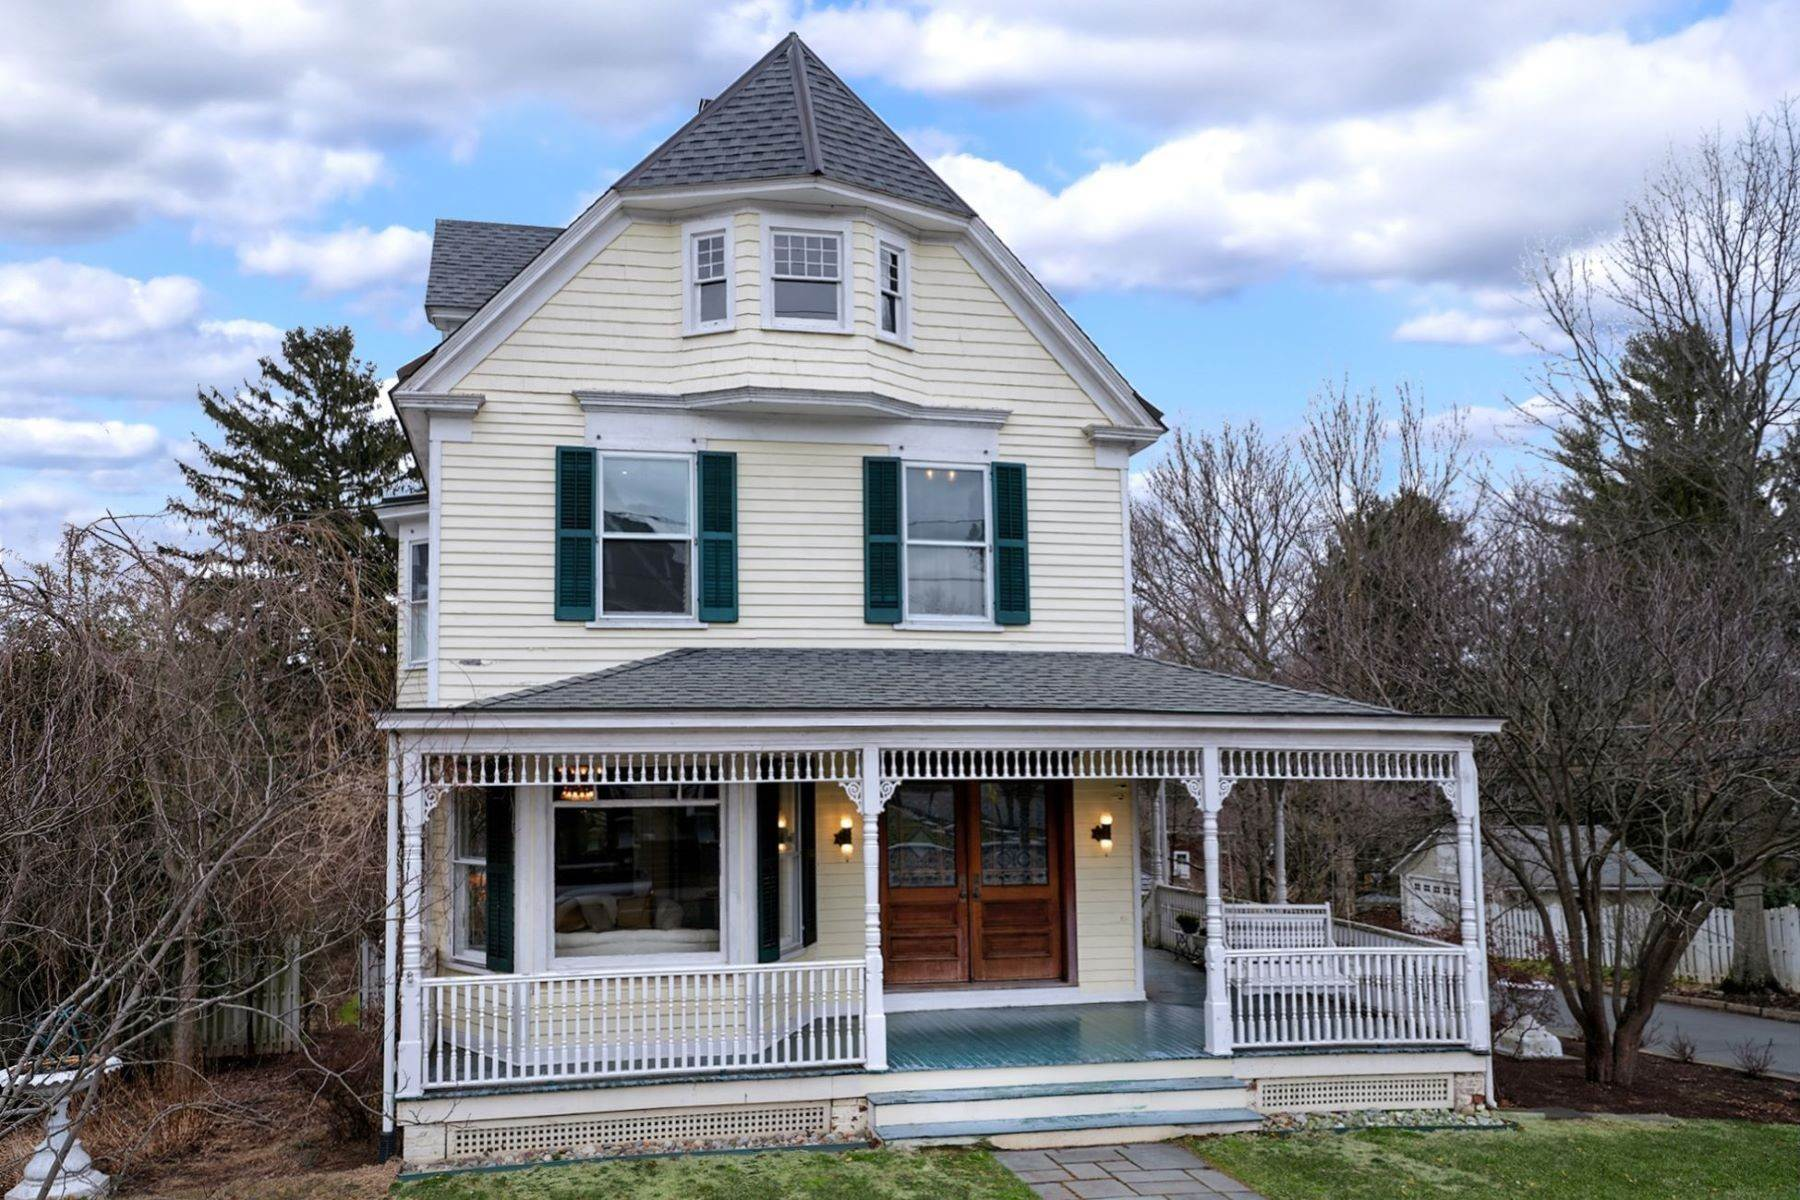 Single Family Homes for Sale at Elegant Victorian Proudly Perched in Hopewell Boro 96 West Broad Street, Hopewell, New Jersey 08525 United States